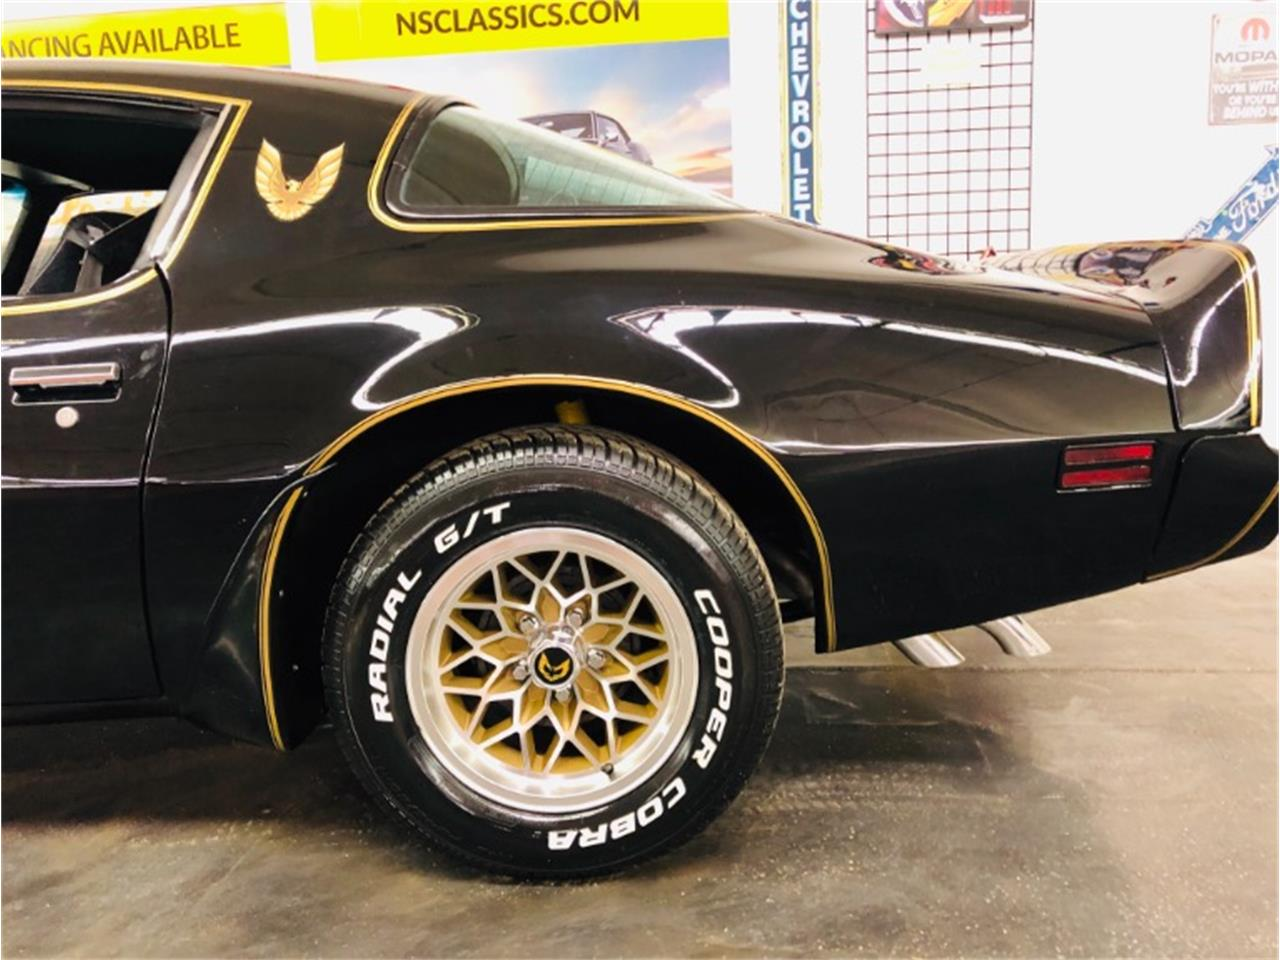 Large Picture of 1979 Pontiac Firebird Trans Am located in Mundelein Illinois - $29,995.00 - Q52R